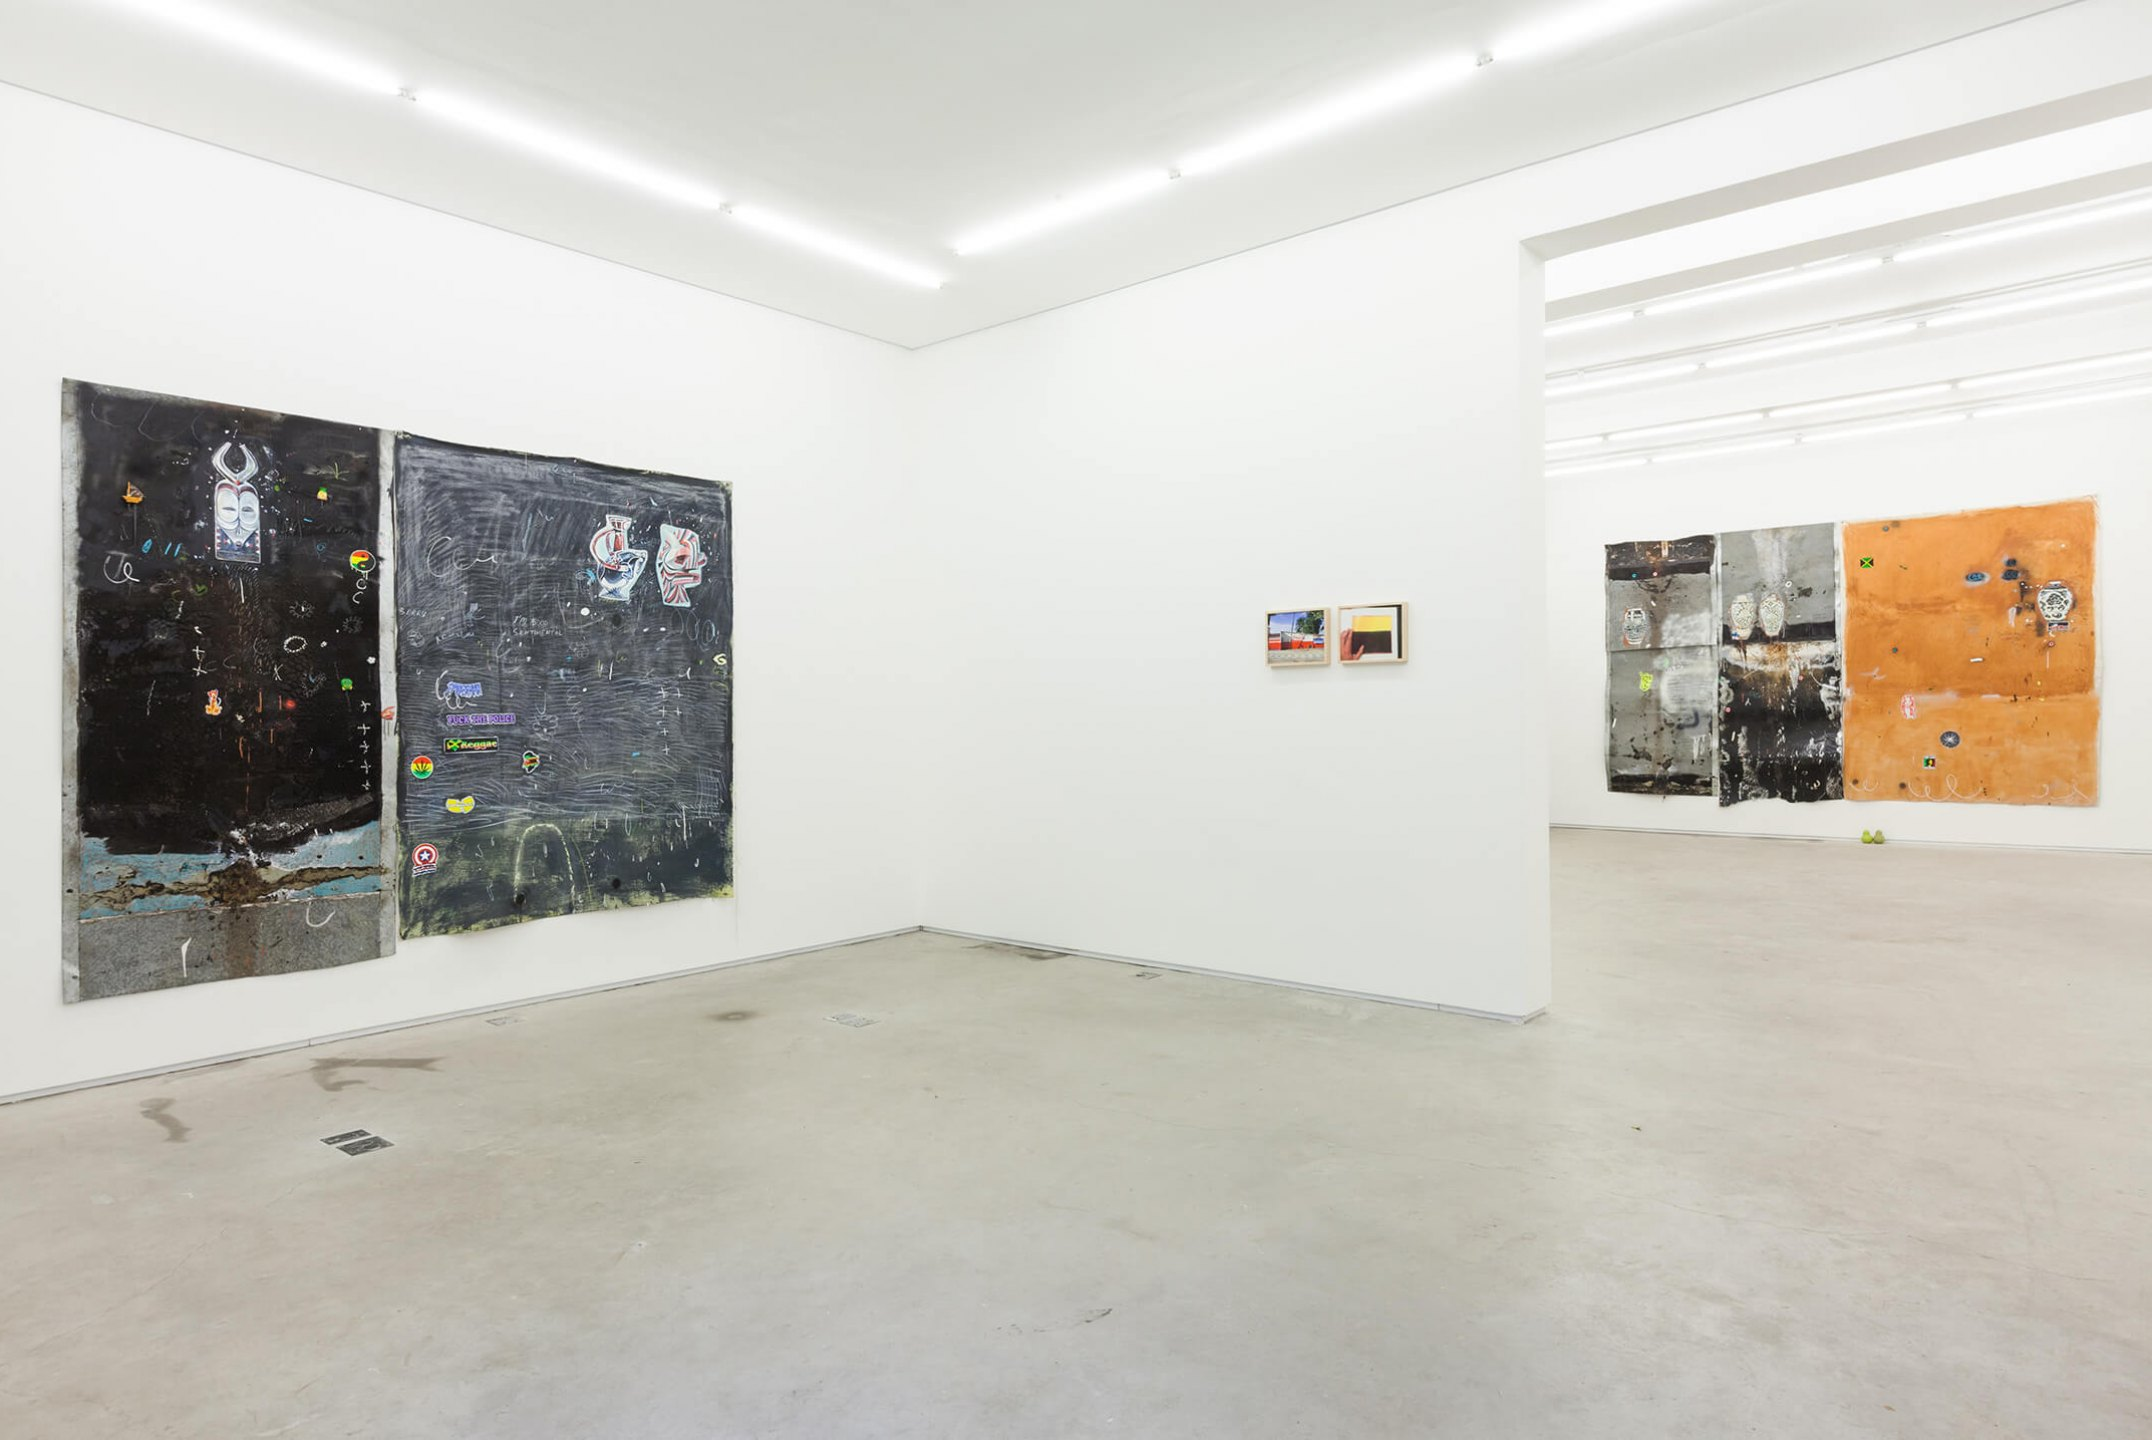 Paulo Nimer Pjota, <em>Synthesis between contradictory ideas and the plurality of the object as image</em>, Mendes Wood DM, São Paulo, 2016 - Mendes Wood DM